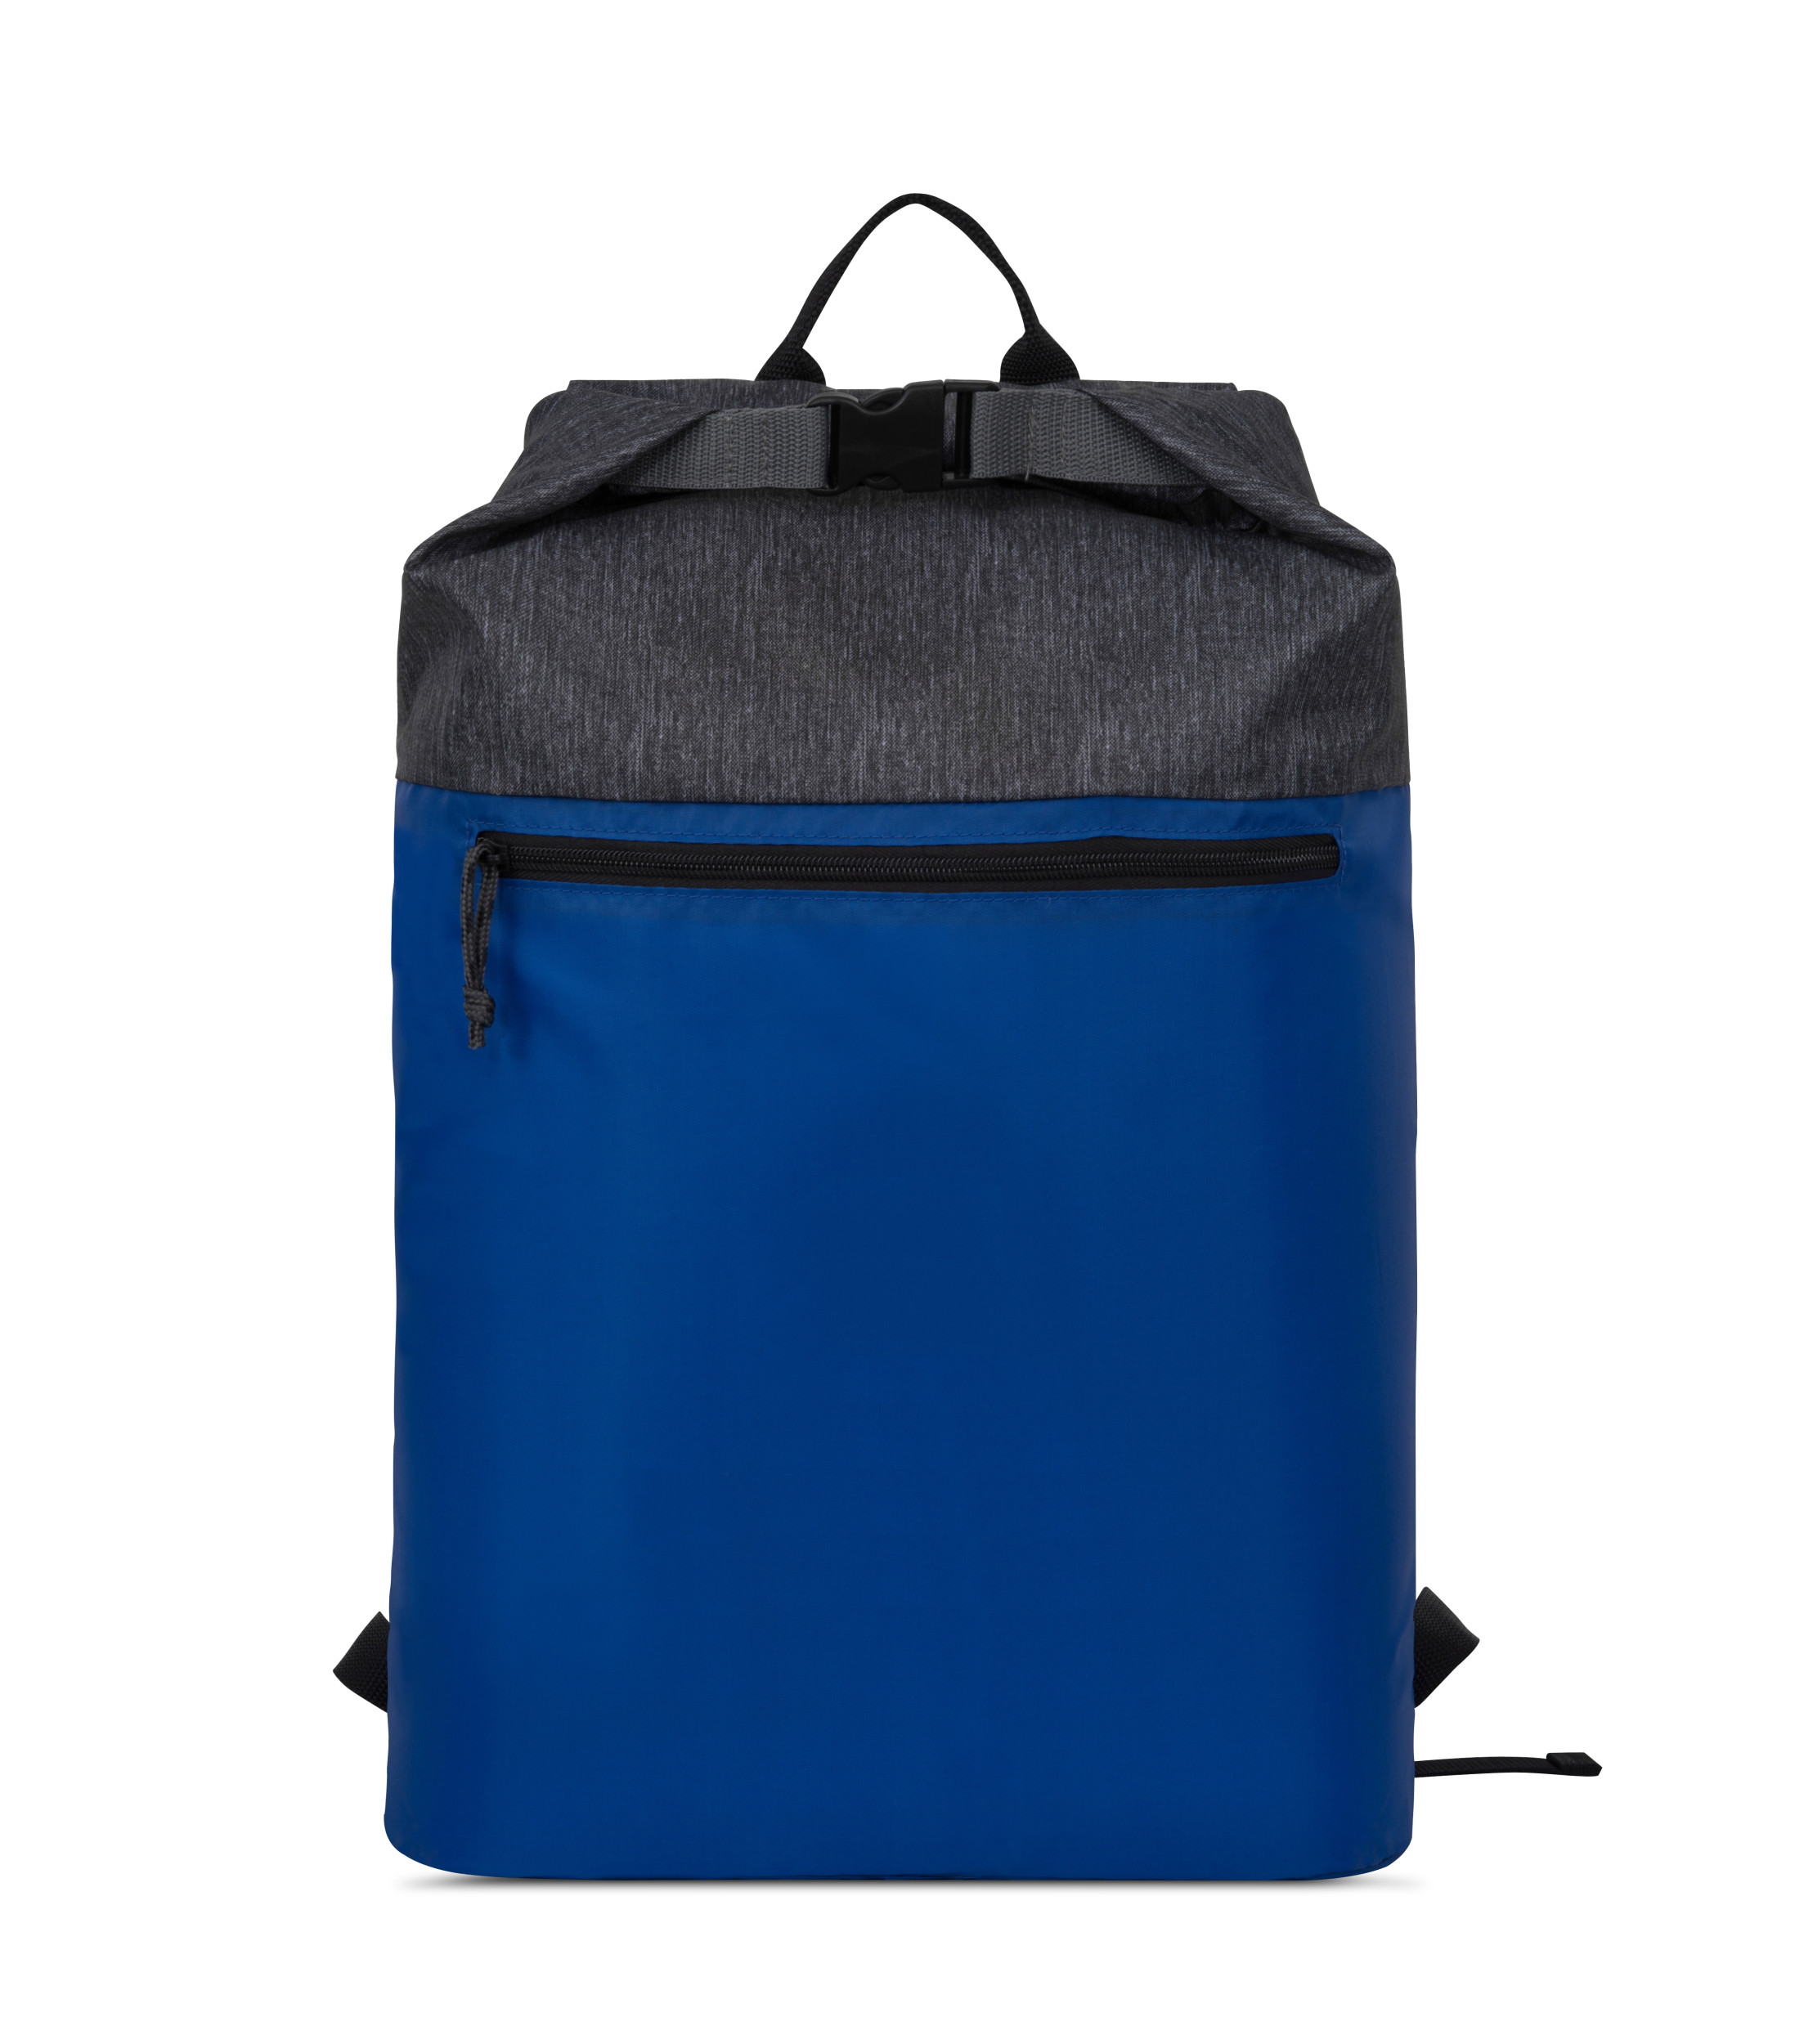 Gemline 5298 - Rainier Roll Top Backpack